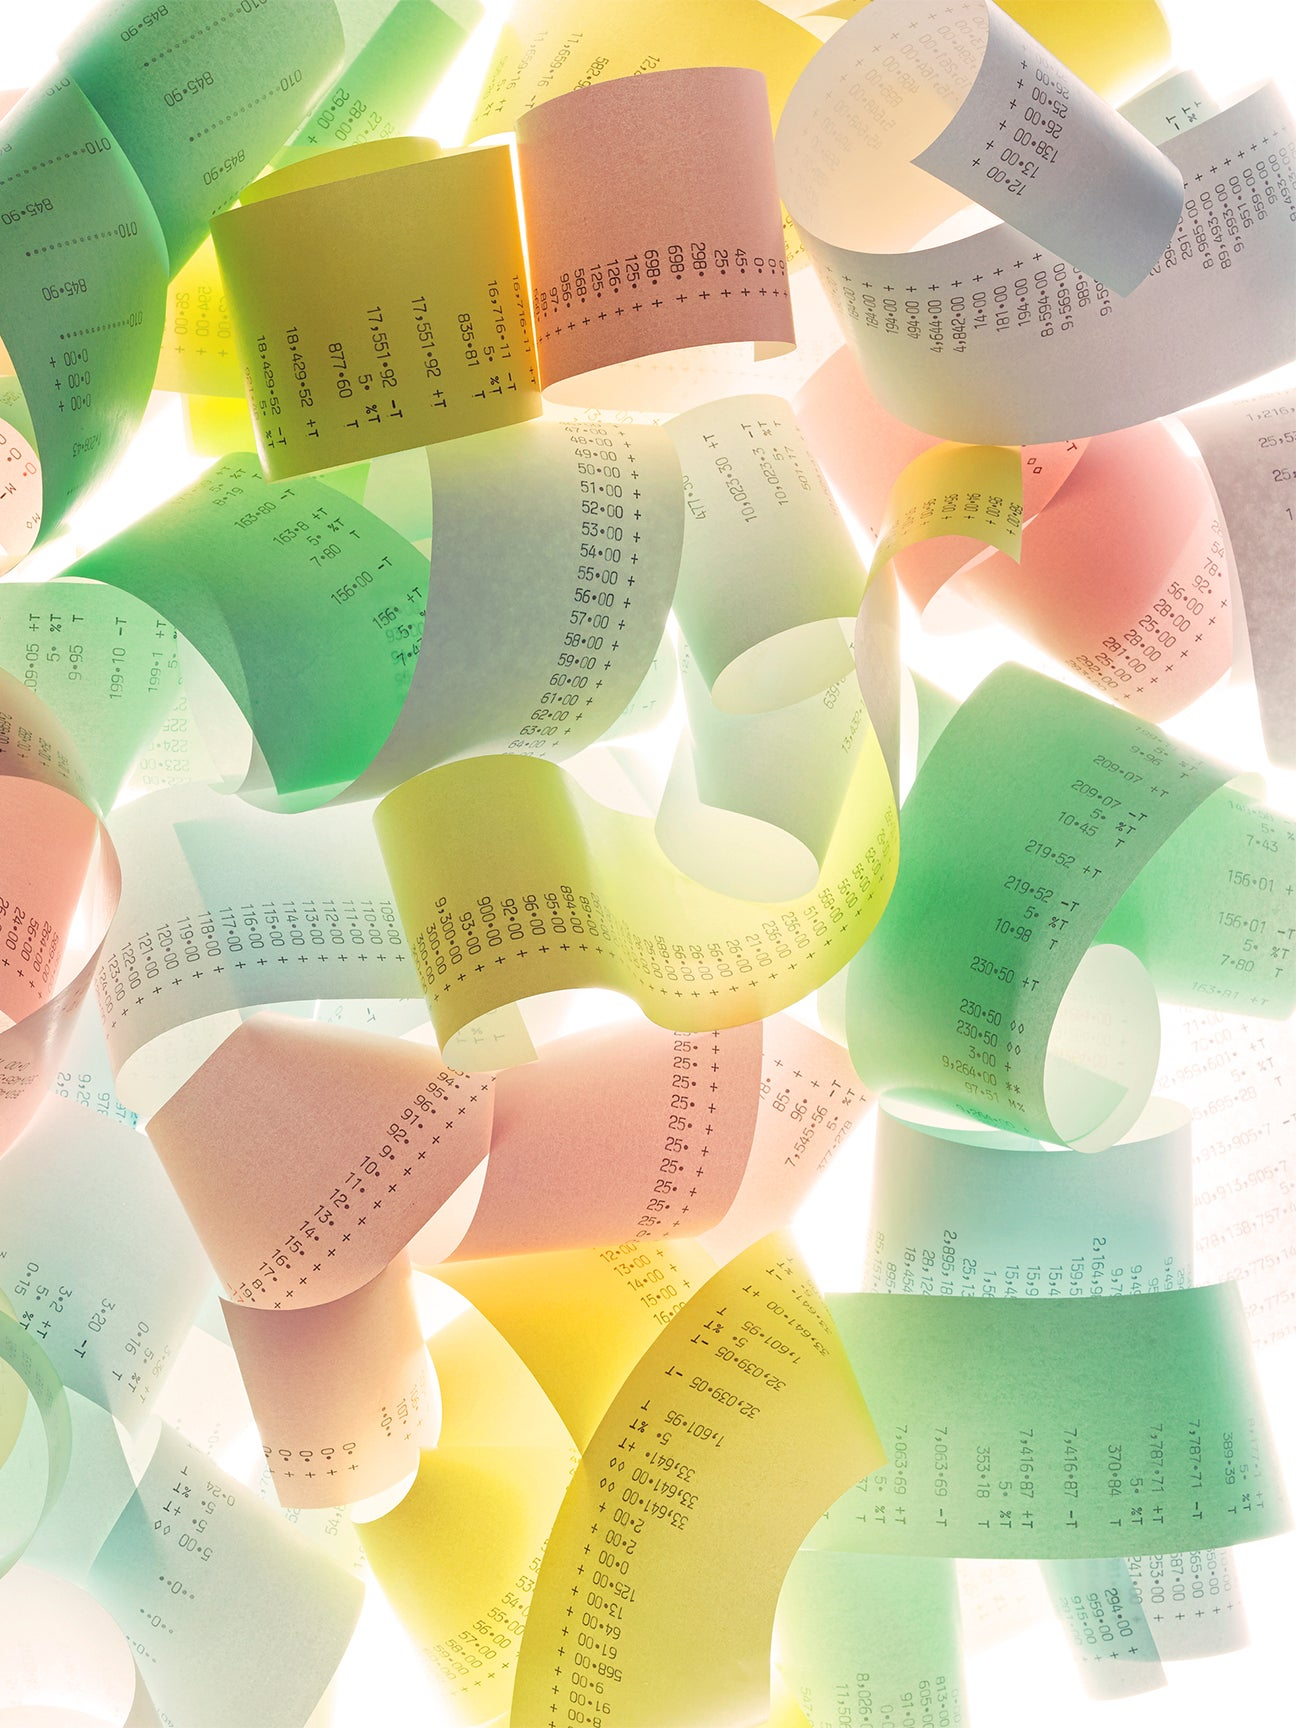 colorful-receipts